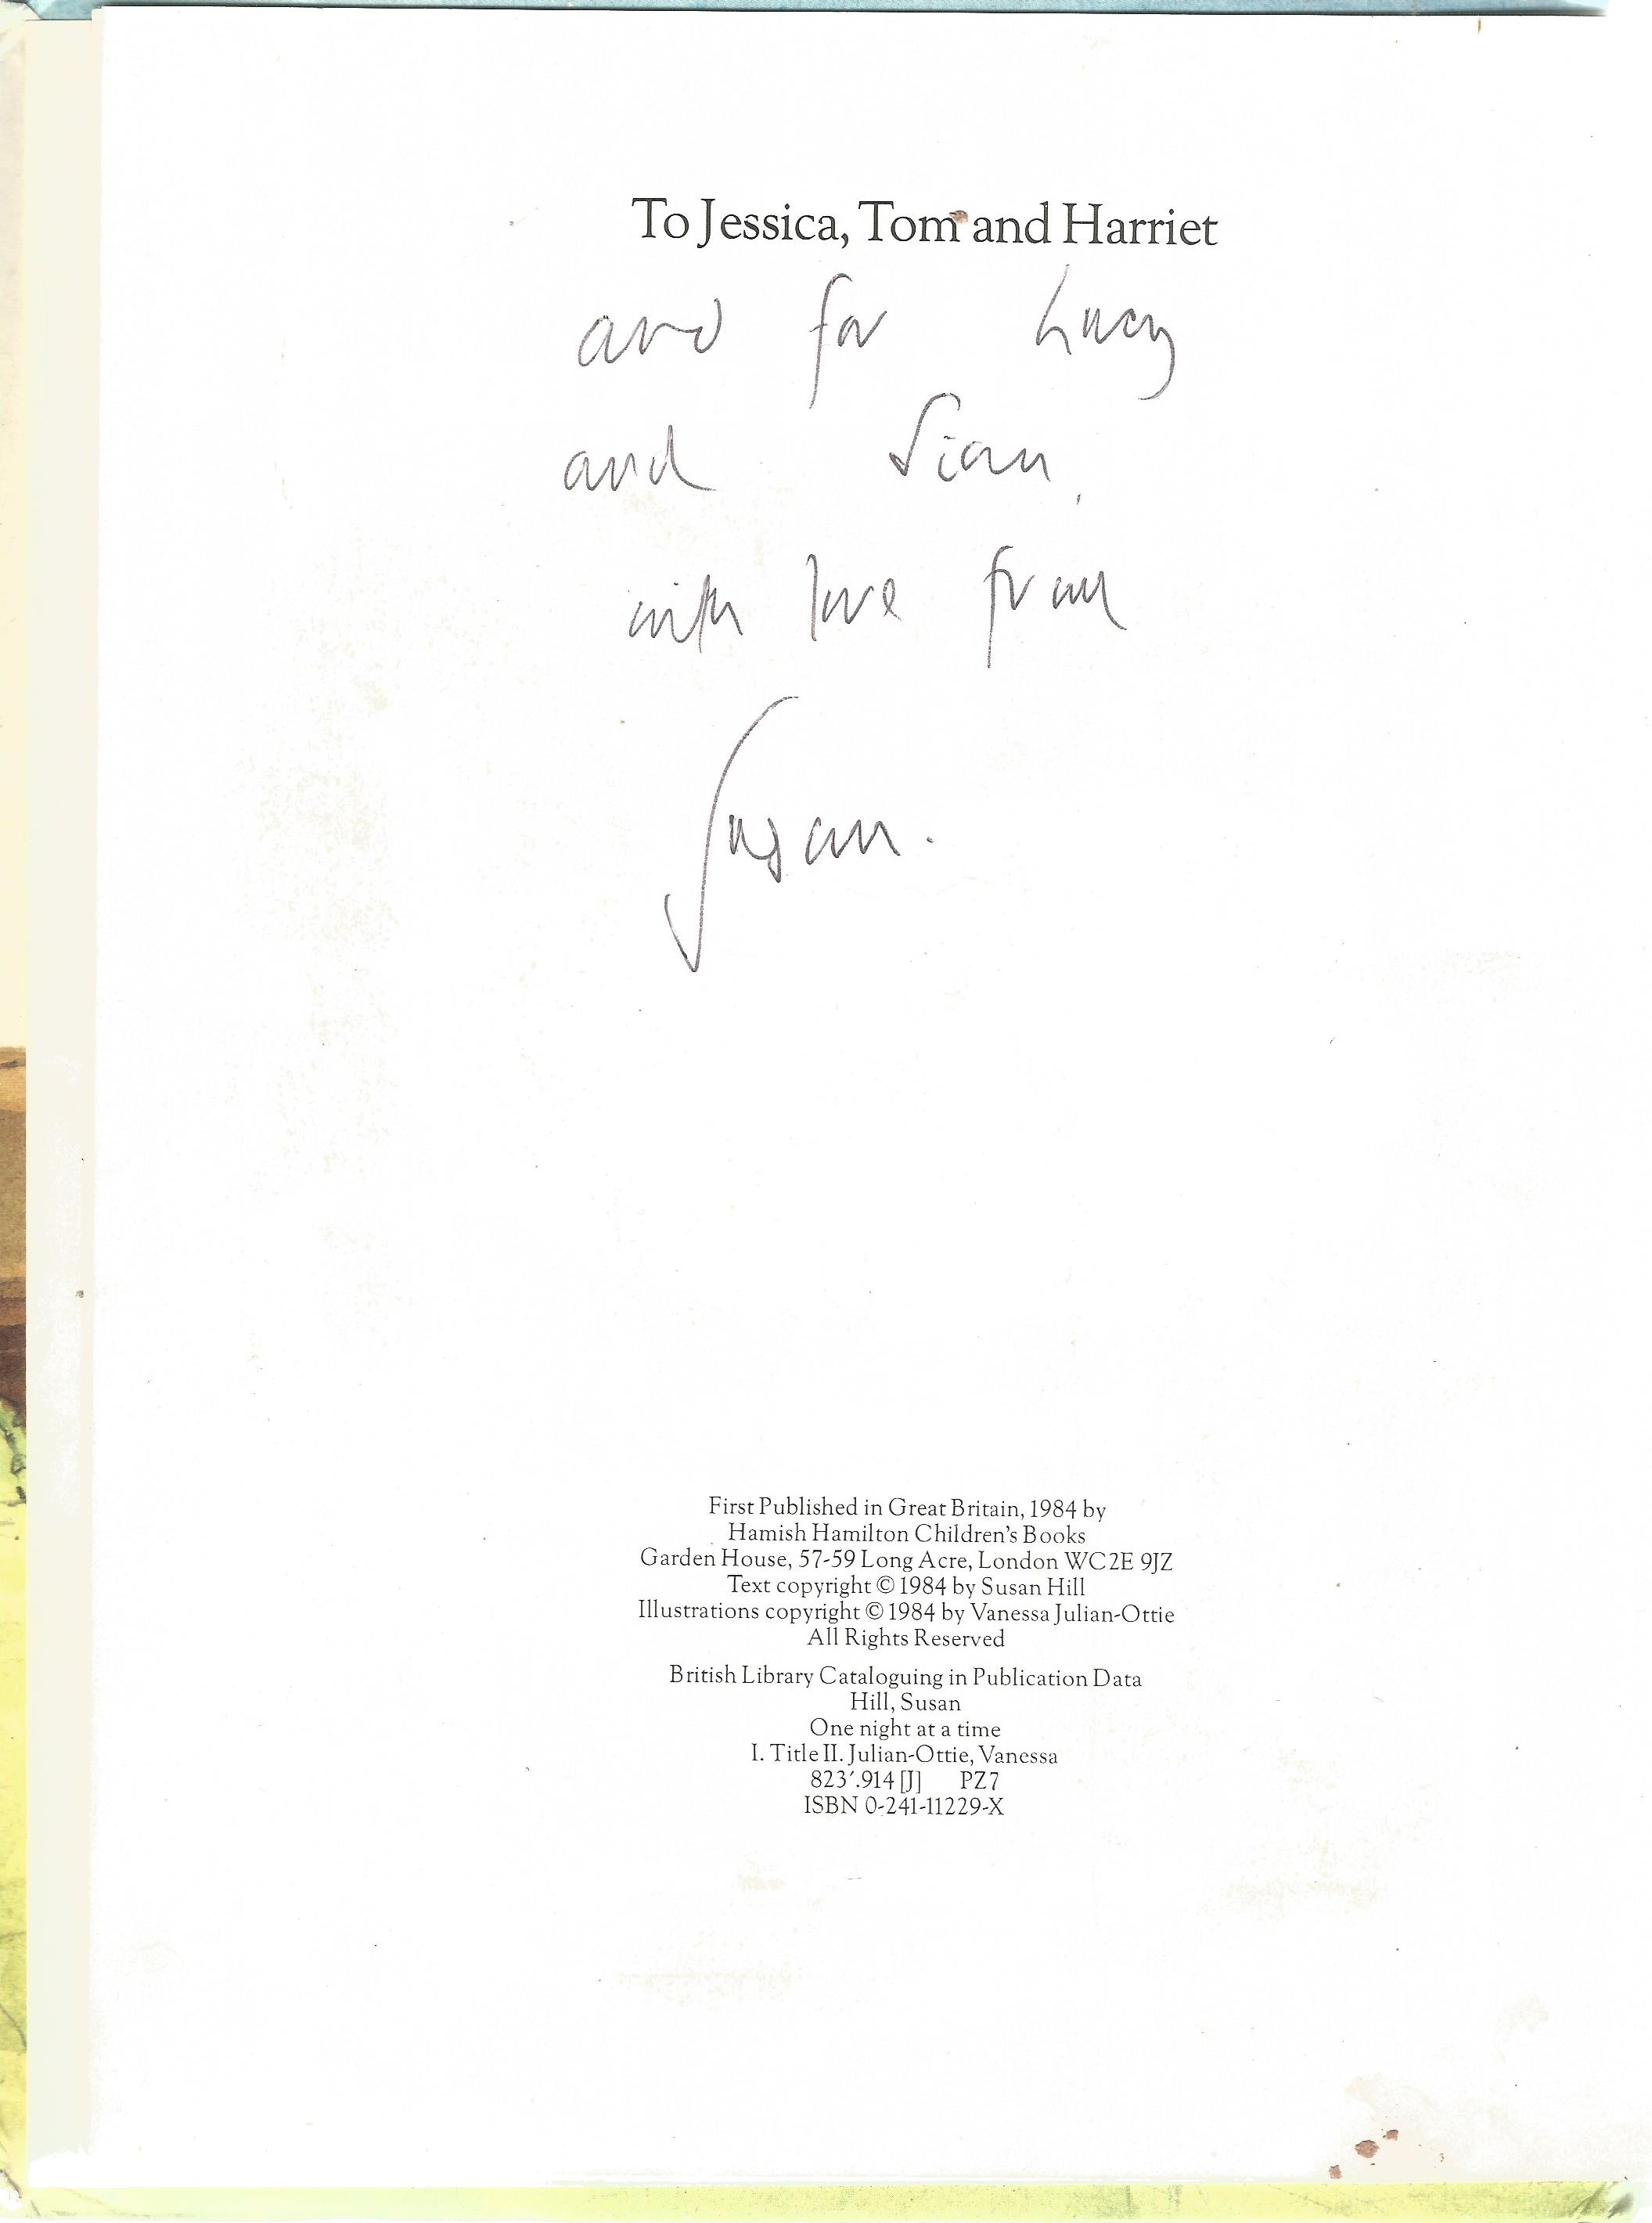 Susan Hill Hardback Book One night at a Time signed by the Author on the back of the Title Page - Image 2 of 2